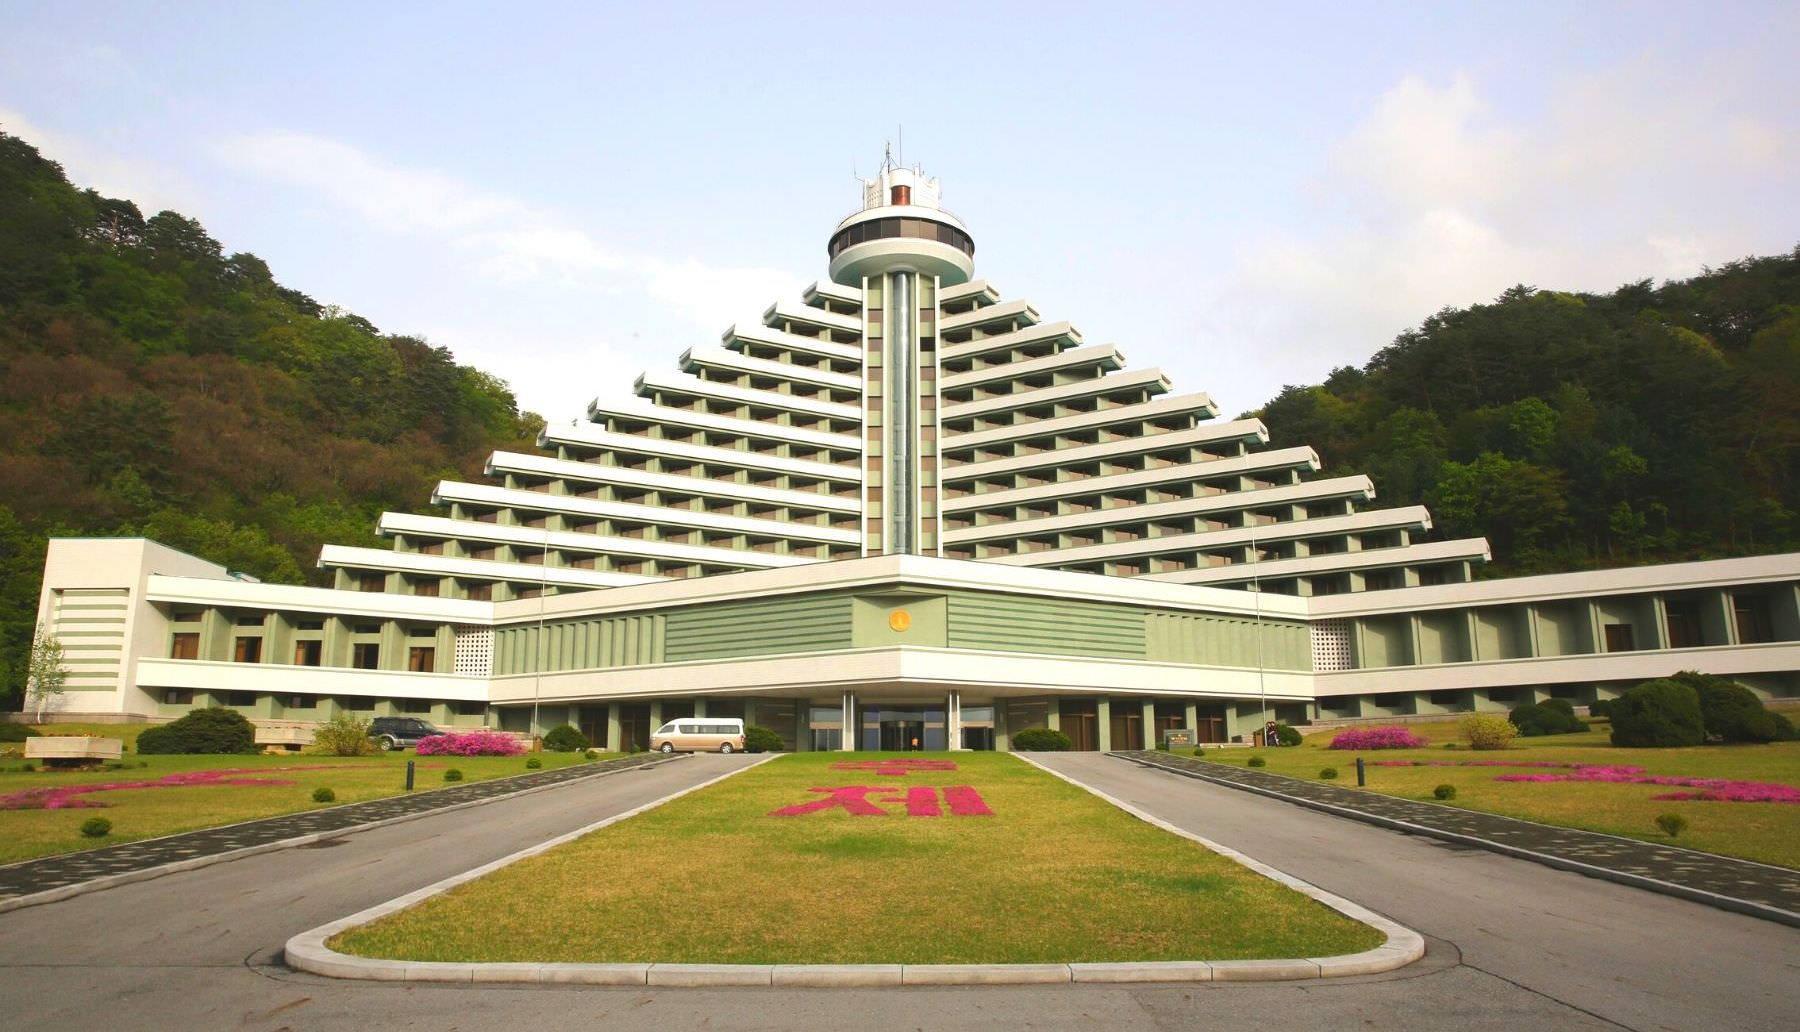 One of the most luxurious hotels in North Korea; The Hyangsan Hotel in Mount Myoyhyang, Pyongan province. Discover the DPRK with KTG Tours